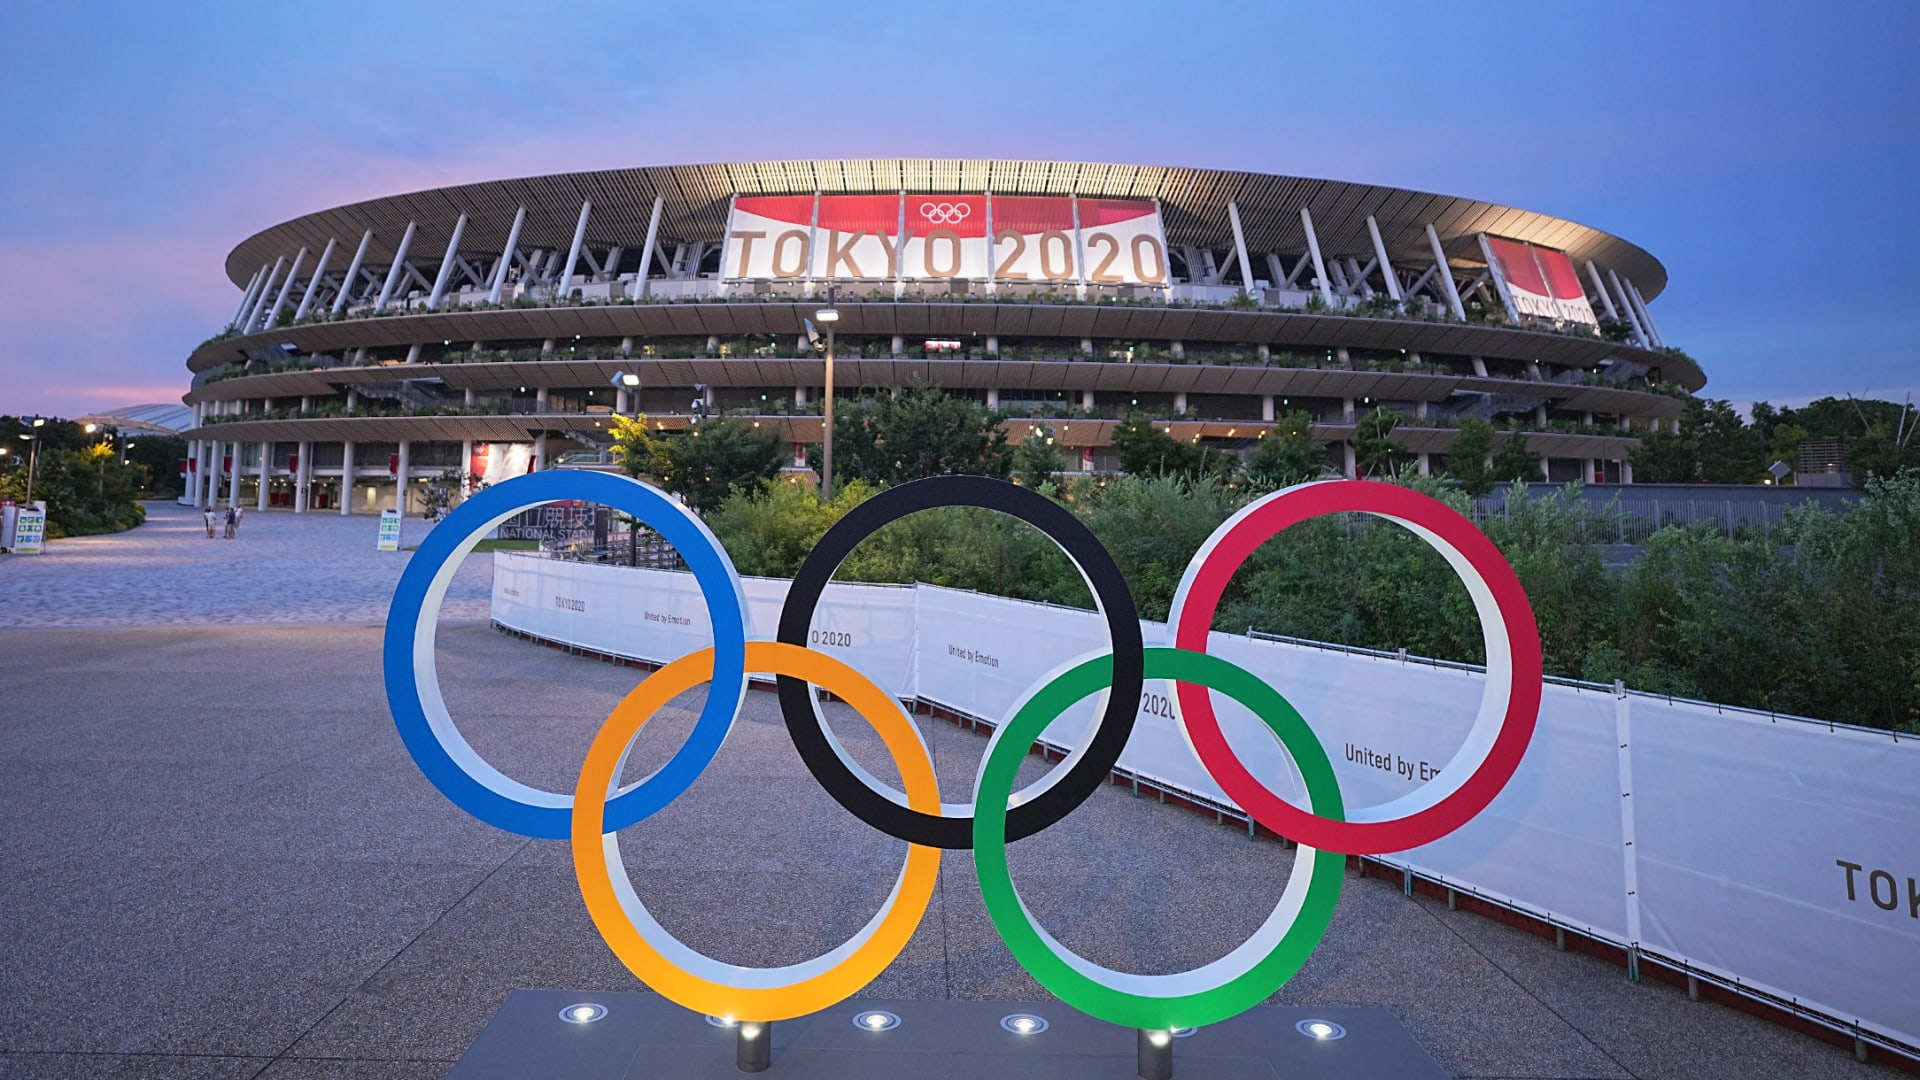 3 Lessons for Every Entrepreneur From the Olympics